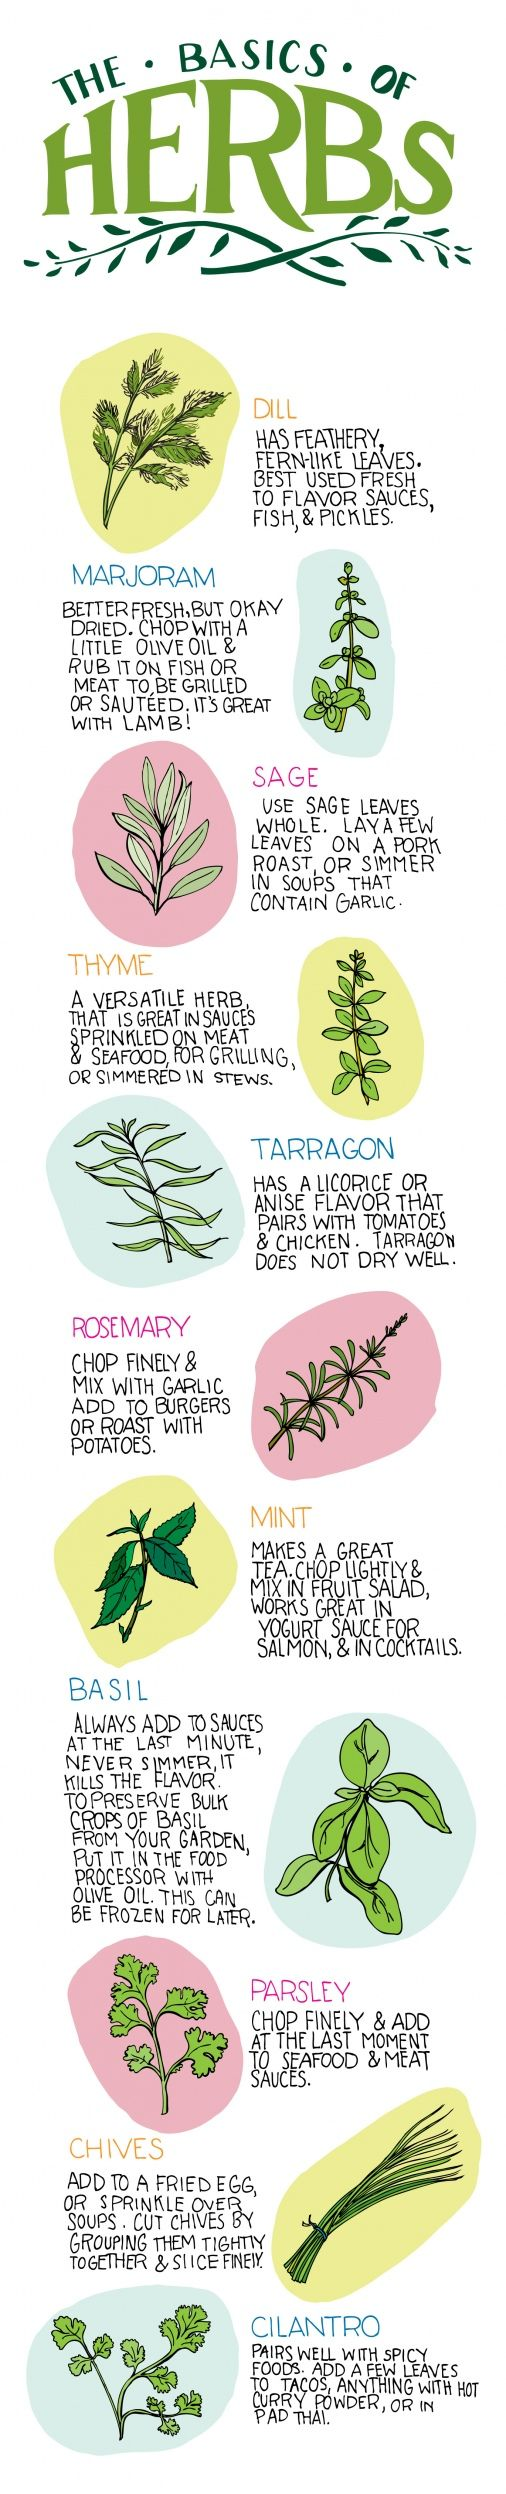 Great basic guideline on herbs and how to use them in cooking.